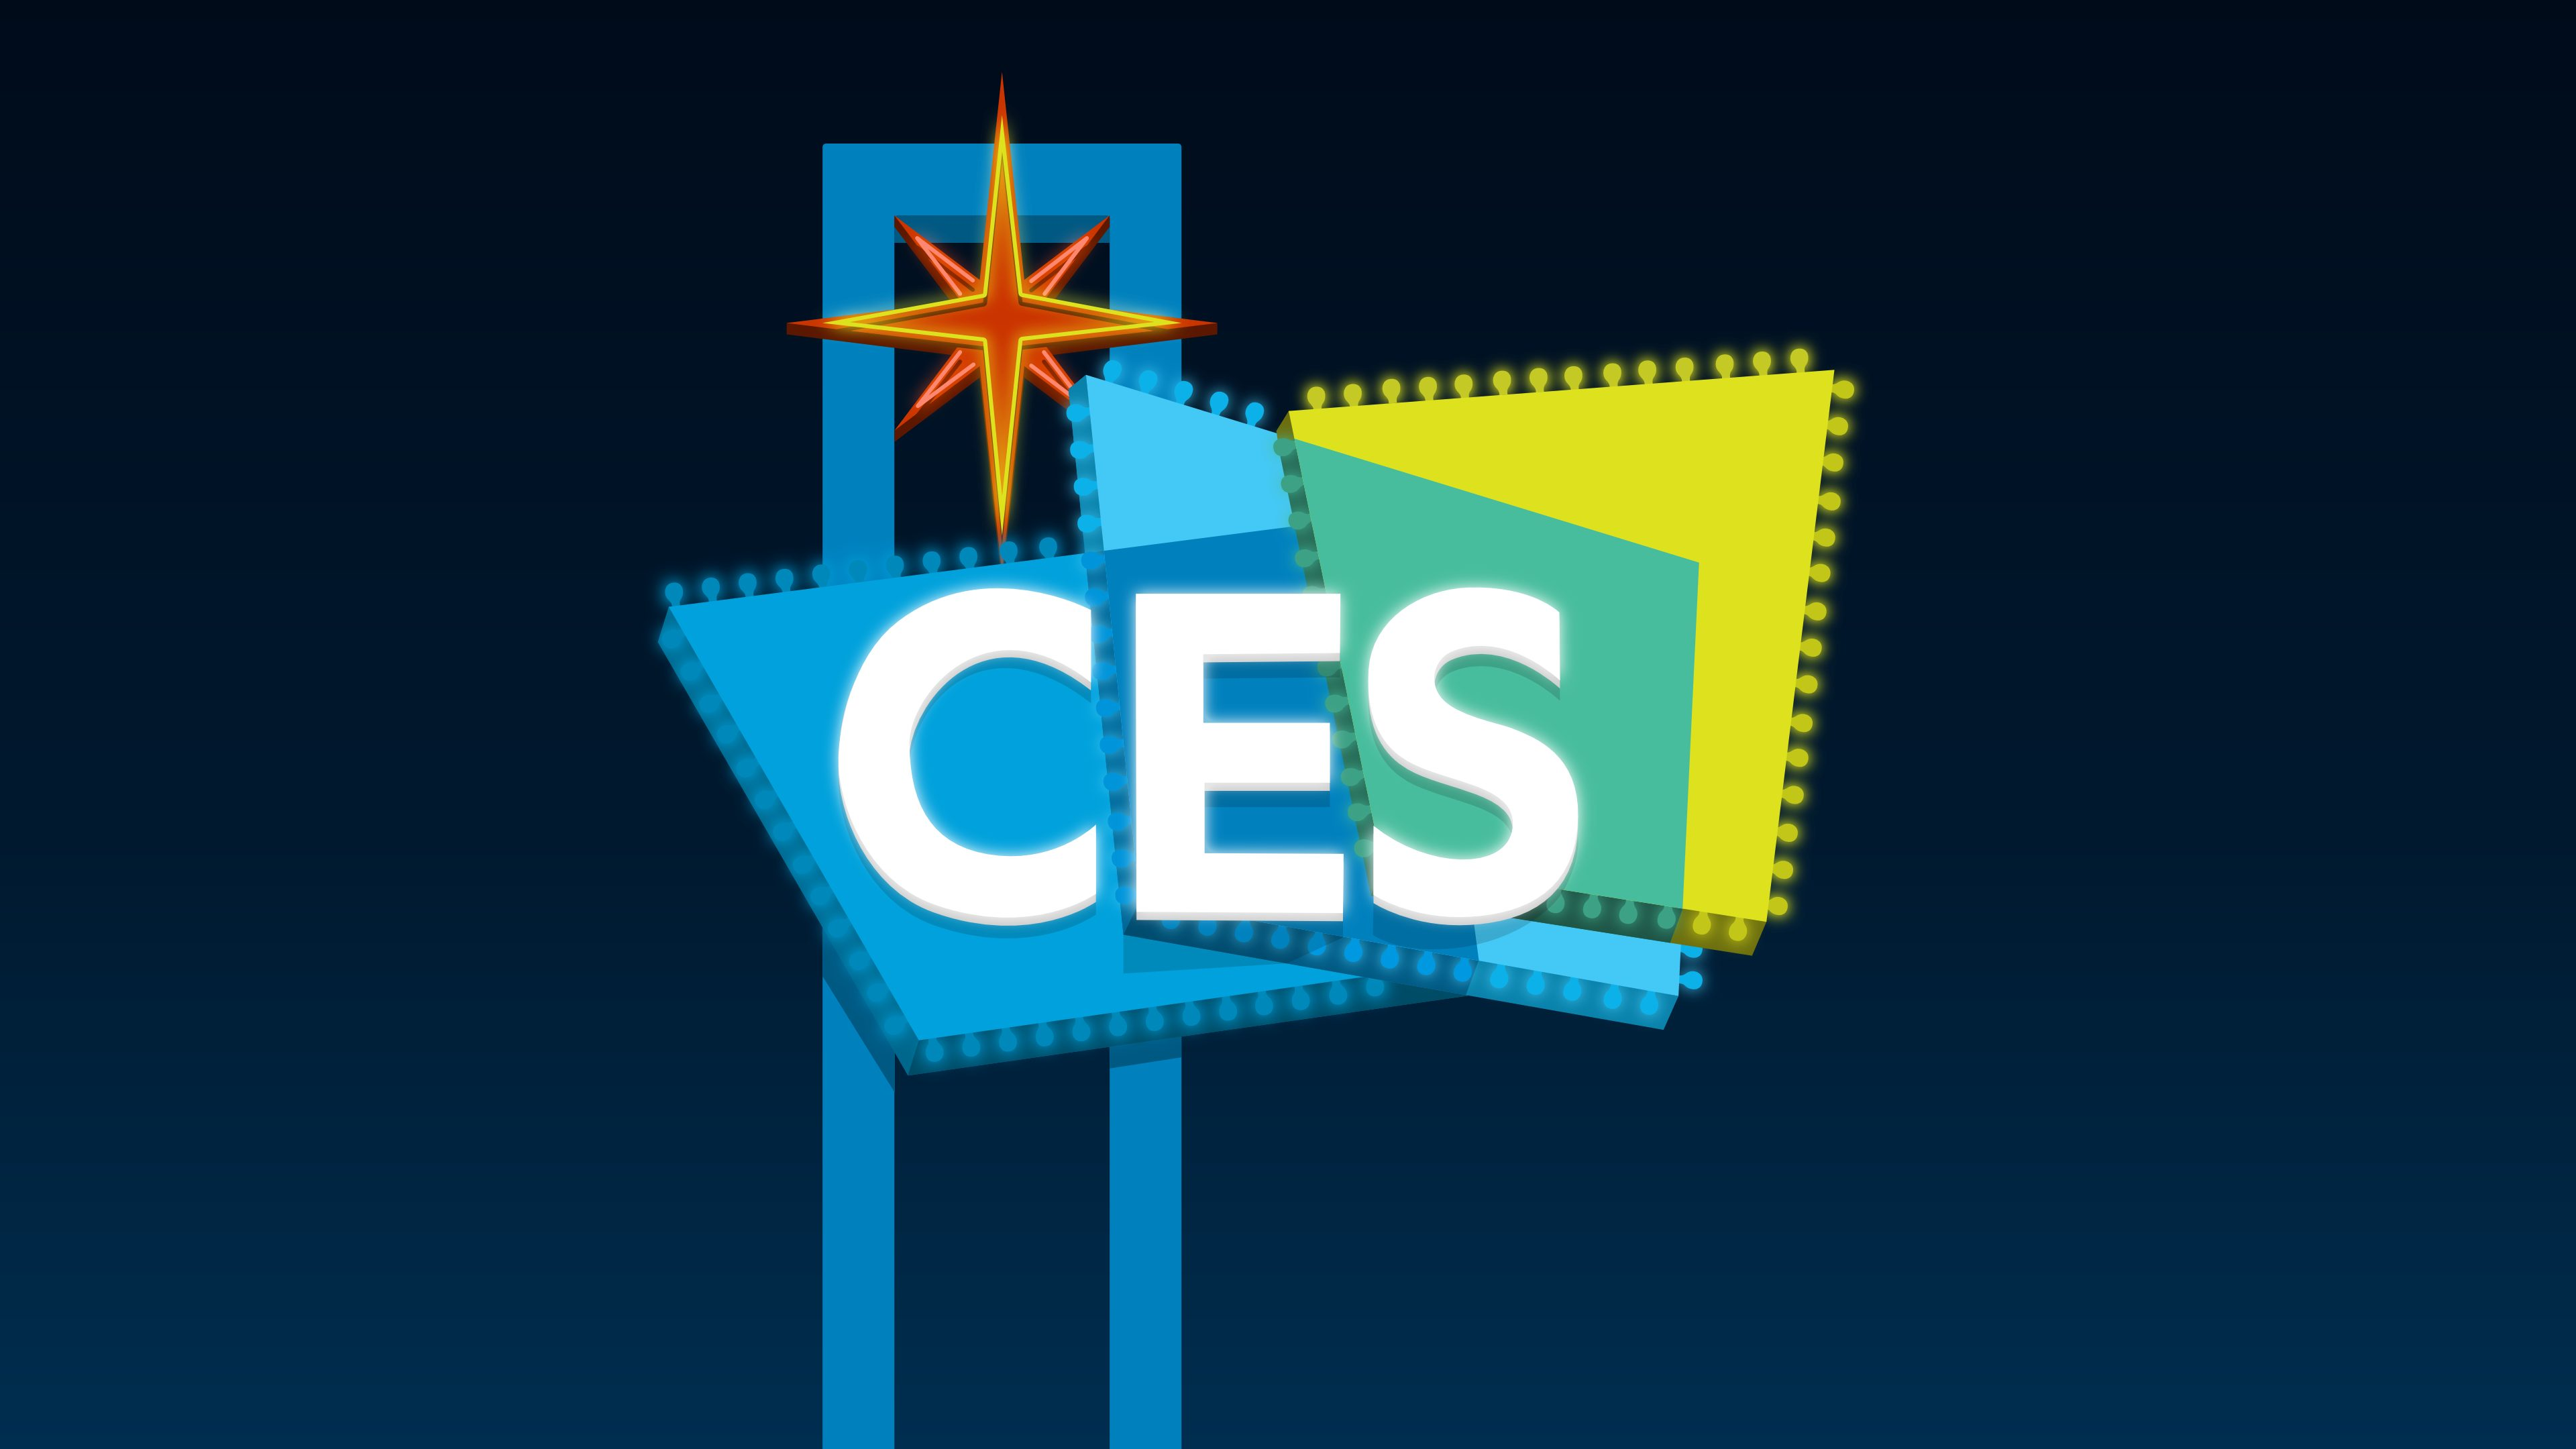 What to expect from CES 2019 fans of Apple?